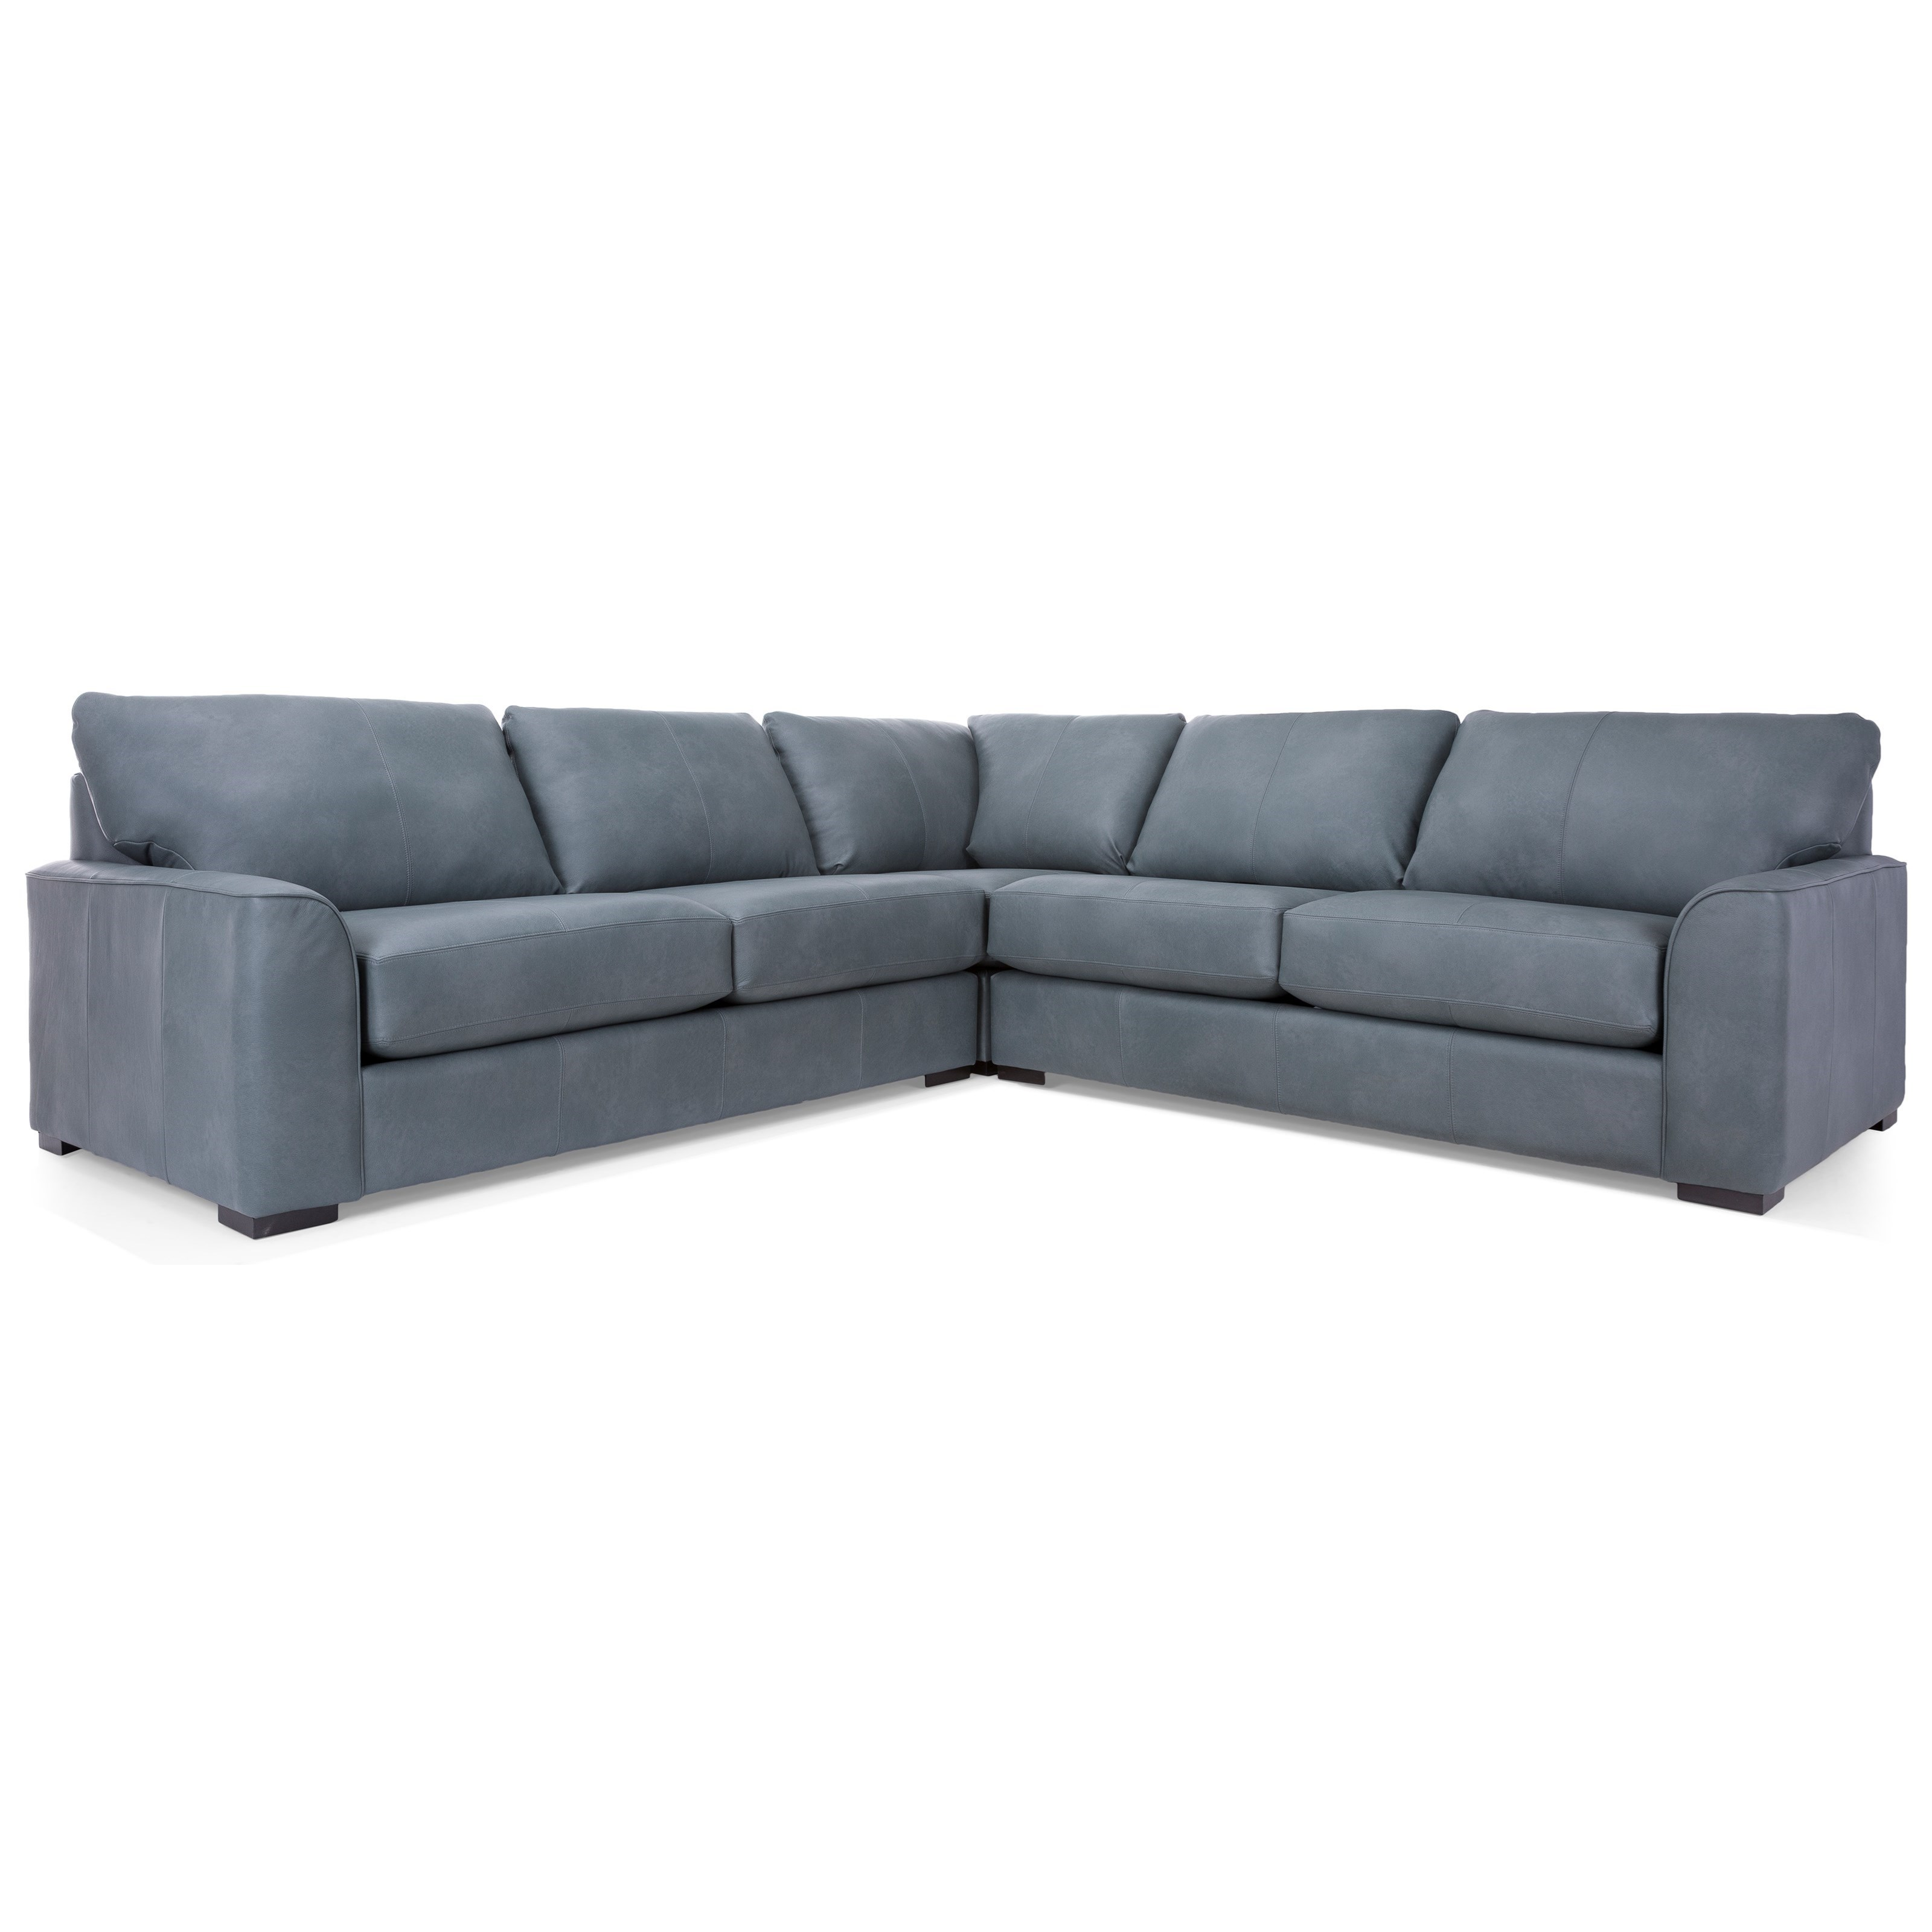 2786 3-Piece Sectional Sofa by Decor-Rest at Rooms for Less